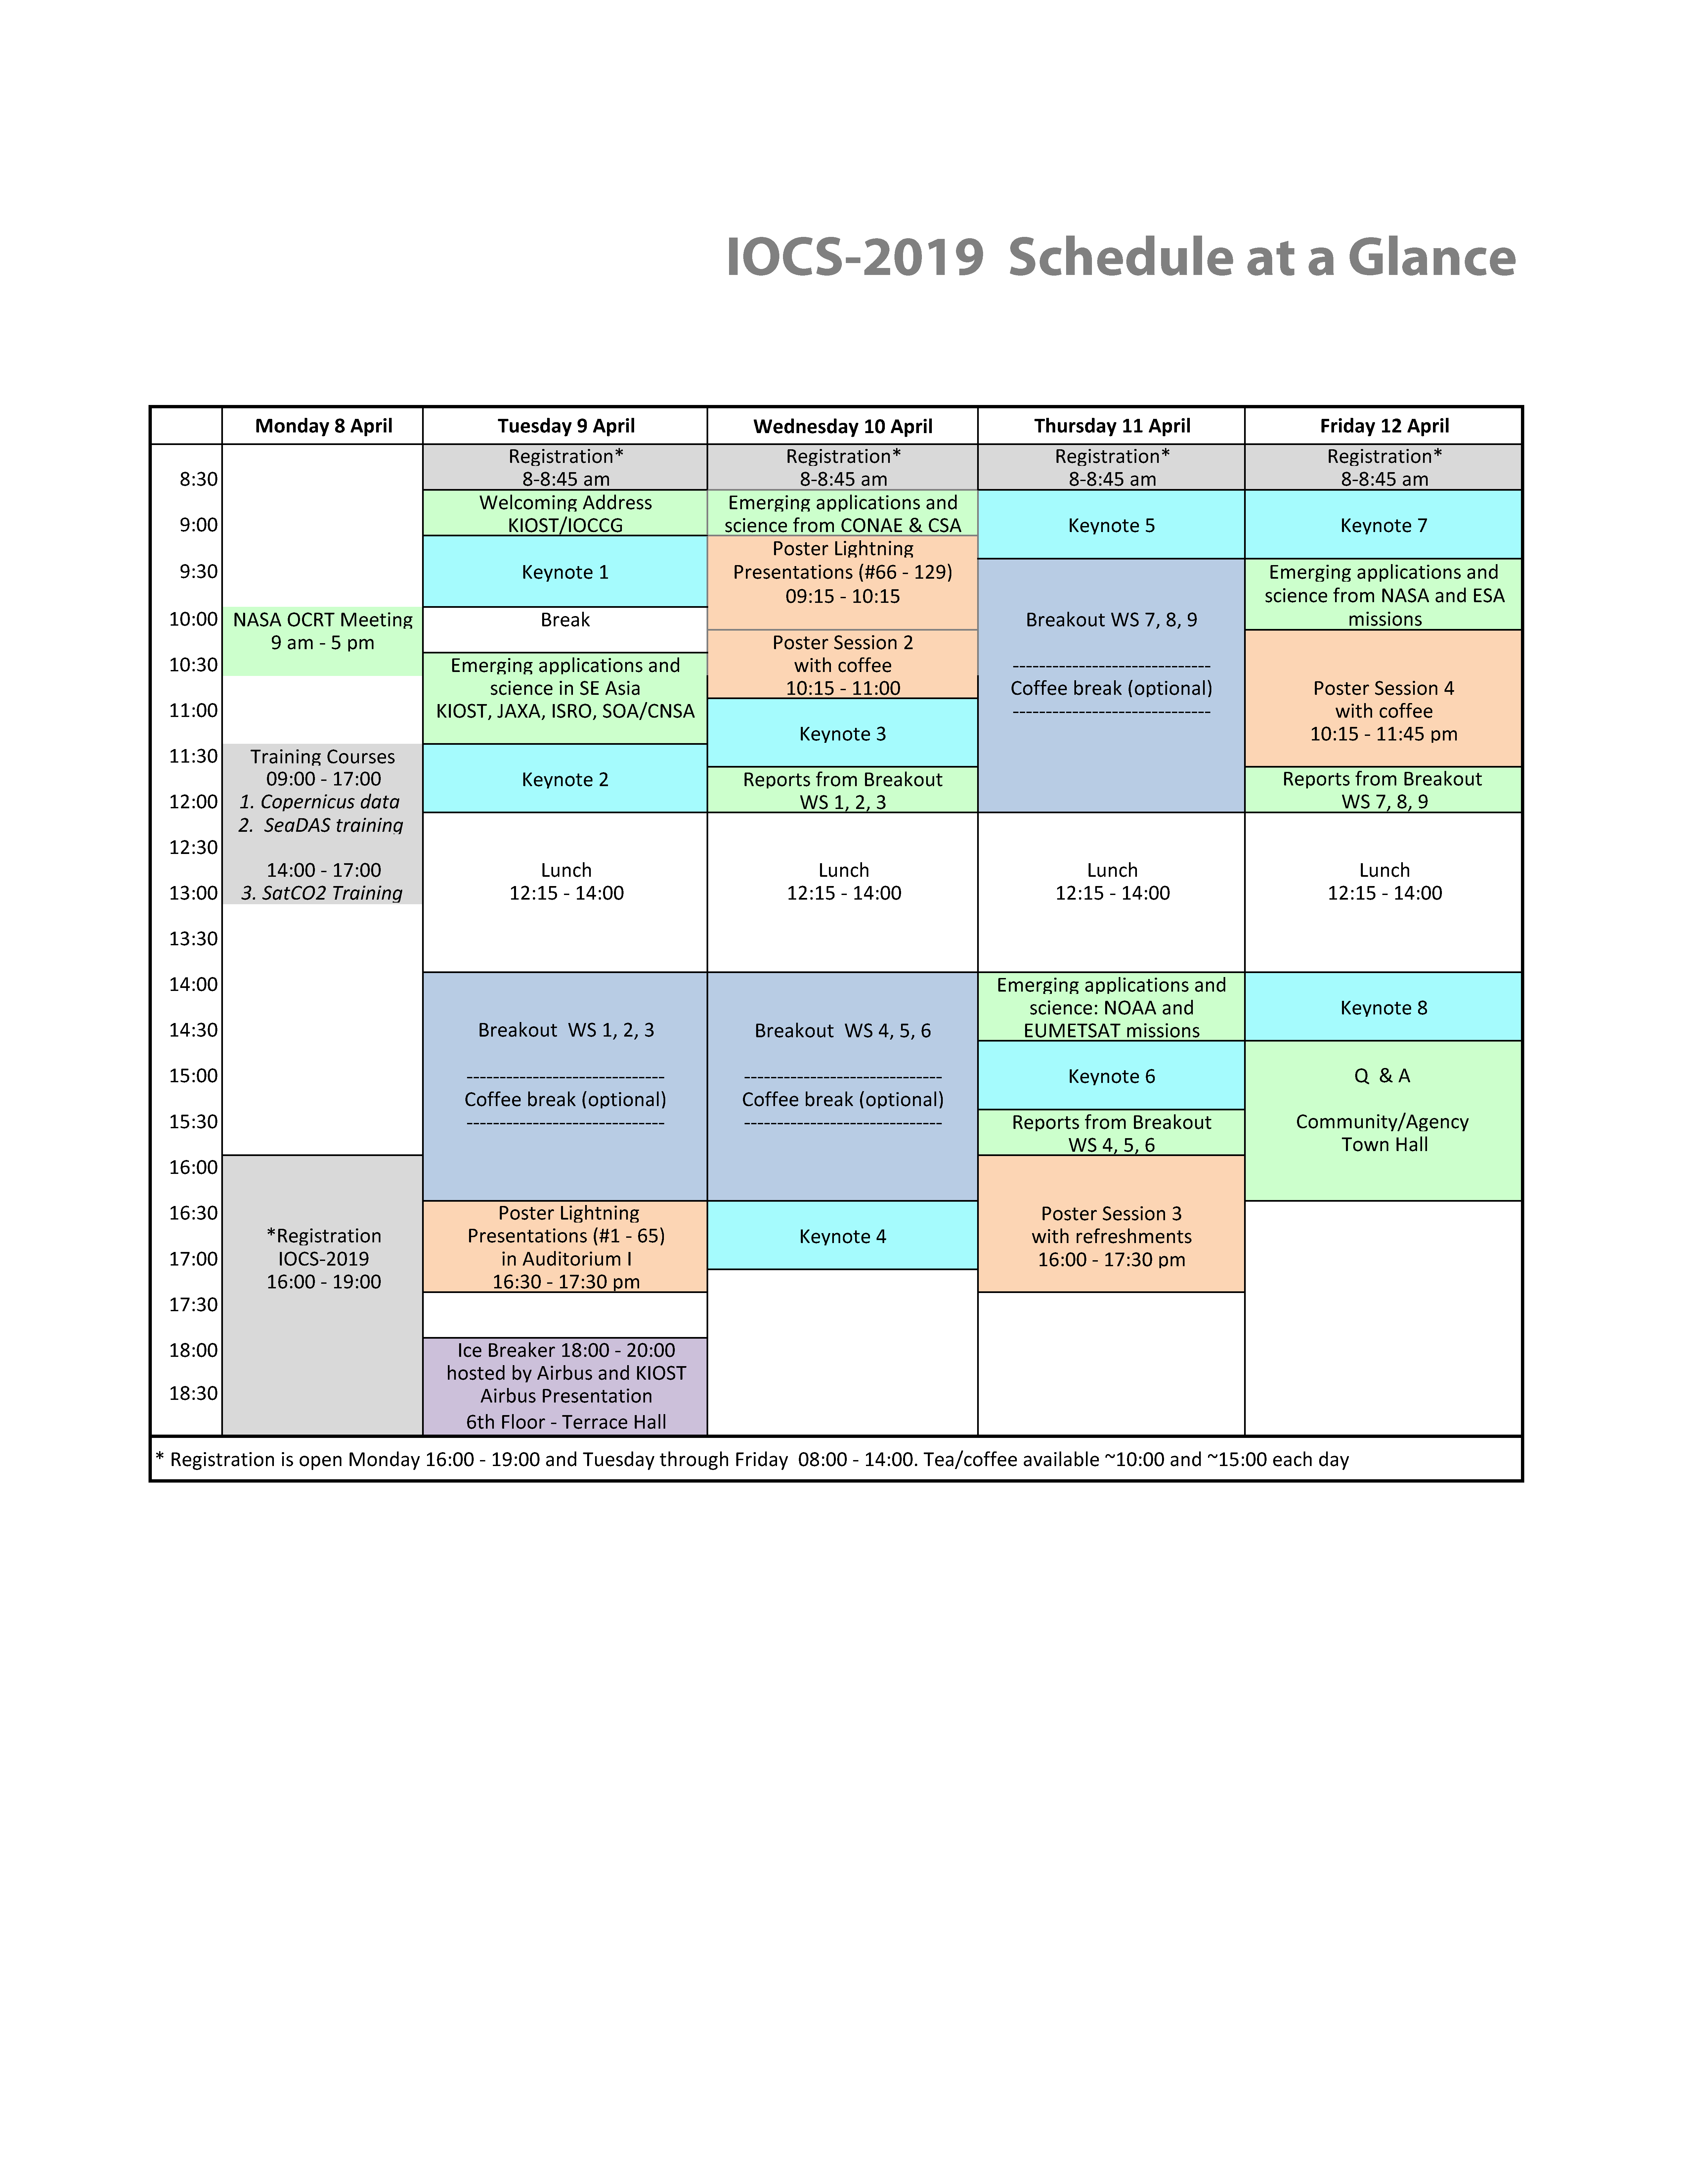 3-schedule-at-a-glance-iocs-2019